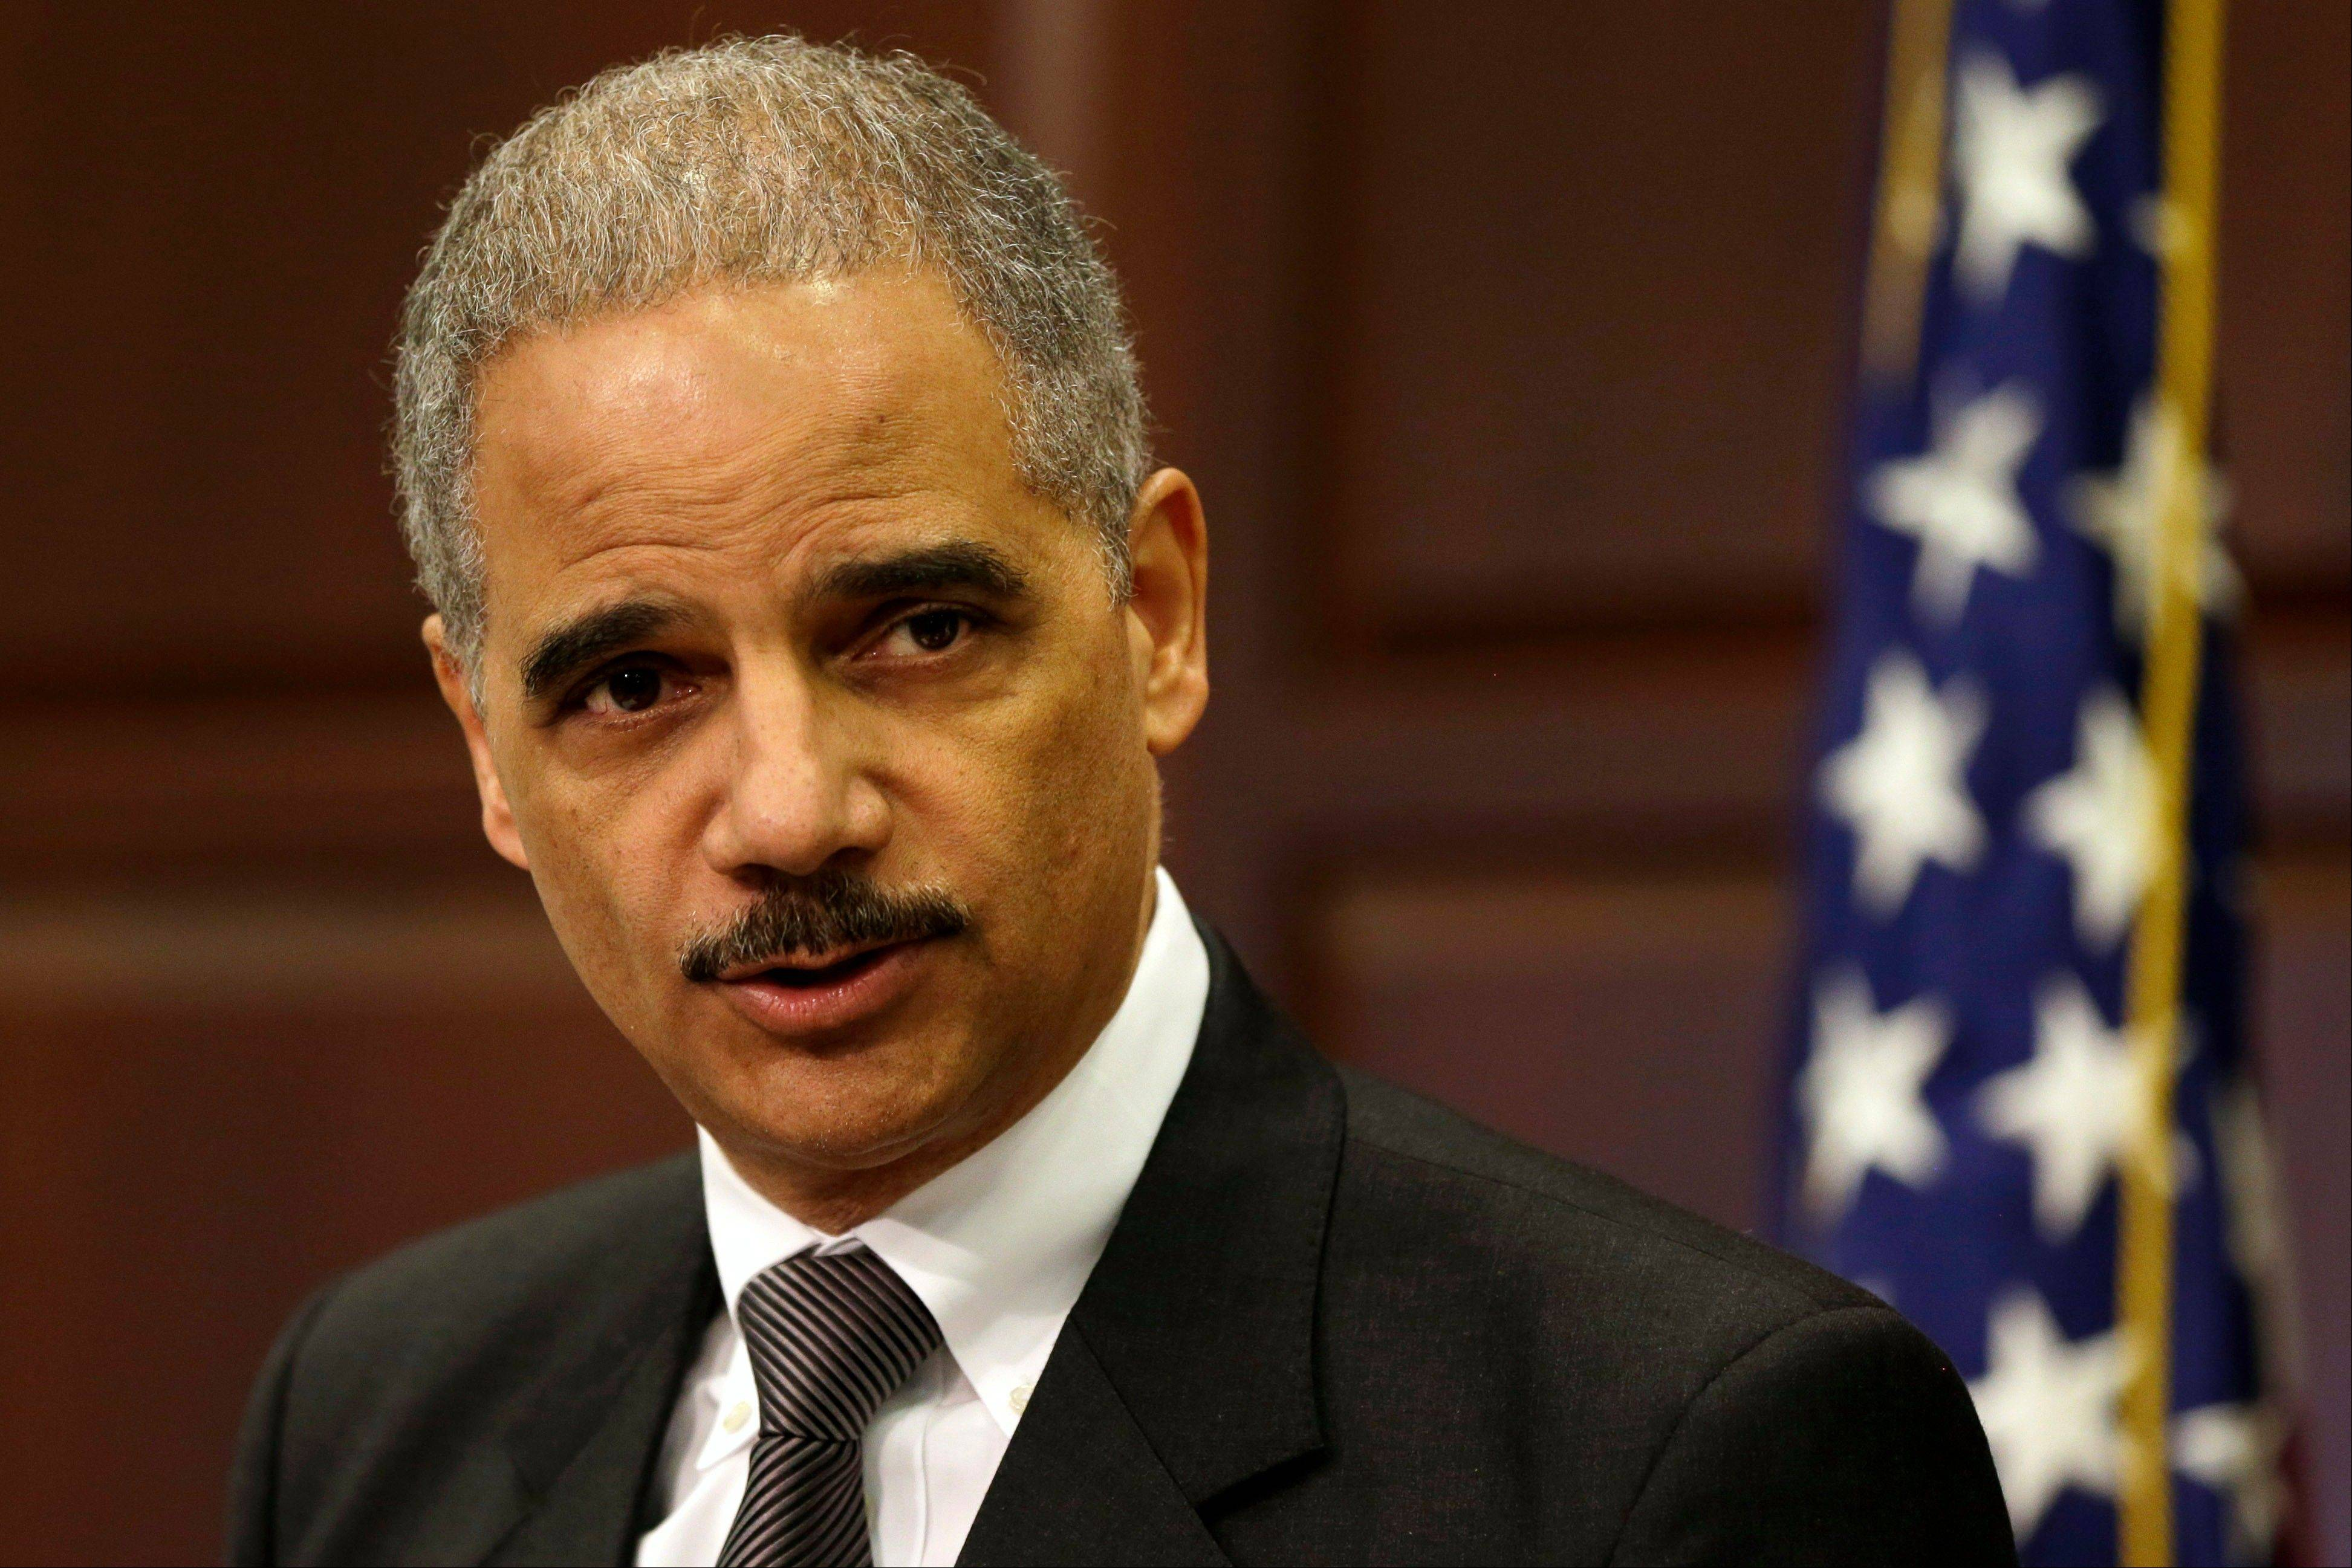 Attorney General Eric Holder speaks about strategy to mitigate the theft of U.S. trade secrets Wednesday. The Obama administration is launching a new strategy to fight the growing theft of trade secrets following new evidence linking cyberstealing to China?s military.